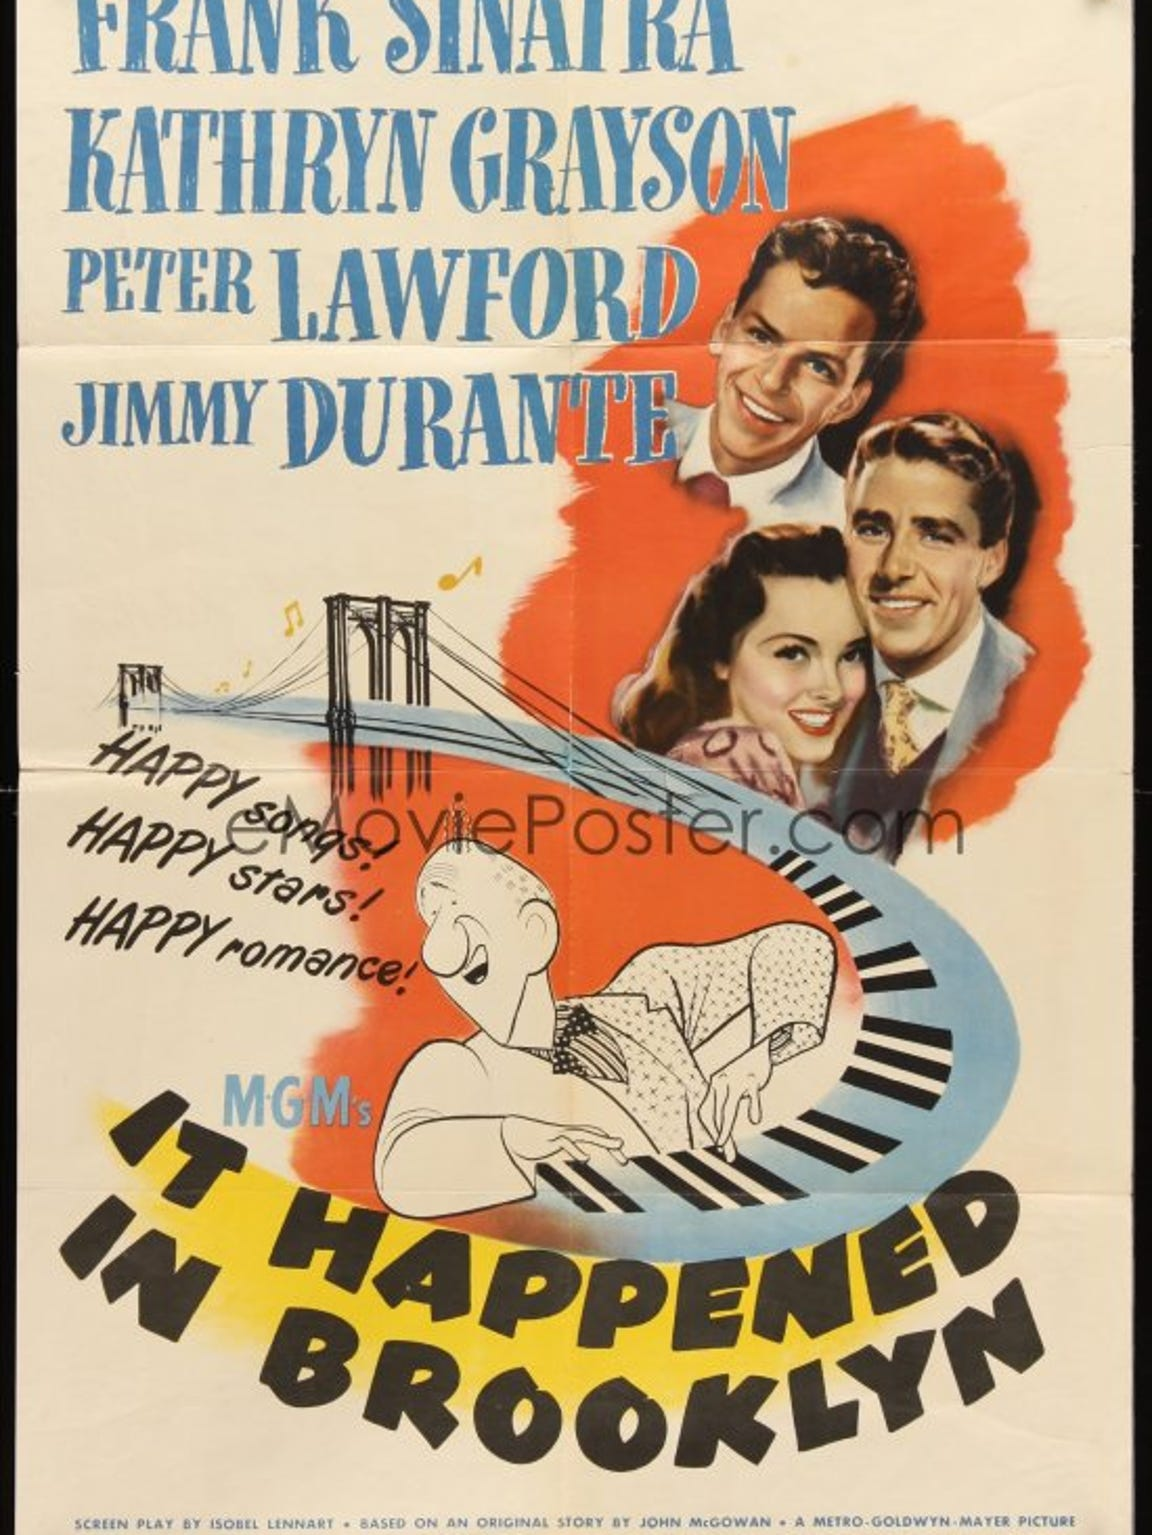 It Happened in Brooklyn movie poster from 1947.